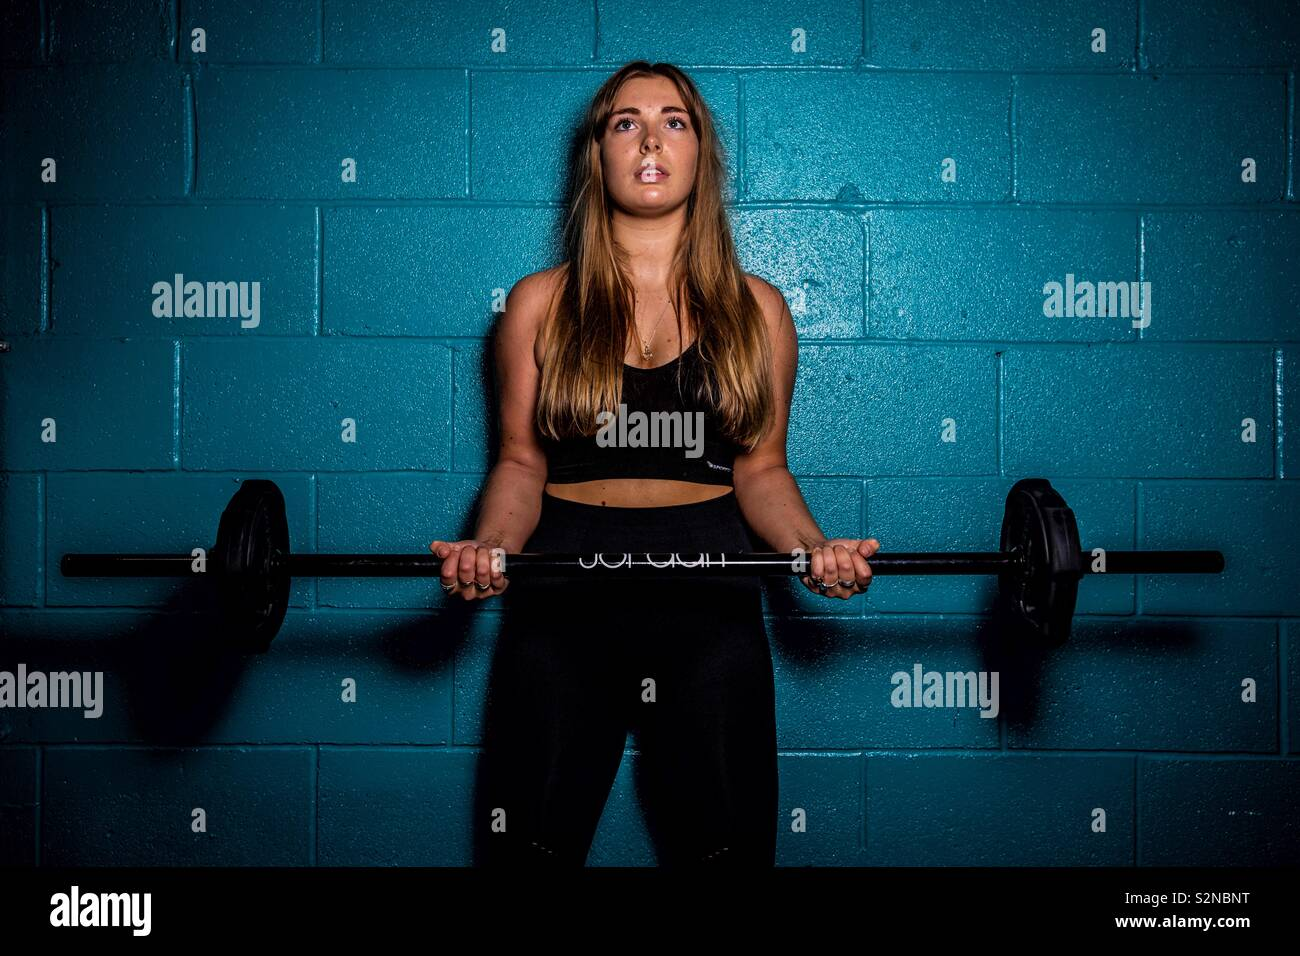 Woman lifting barbell at the gym. - Stock Image